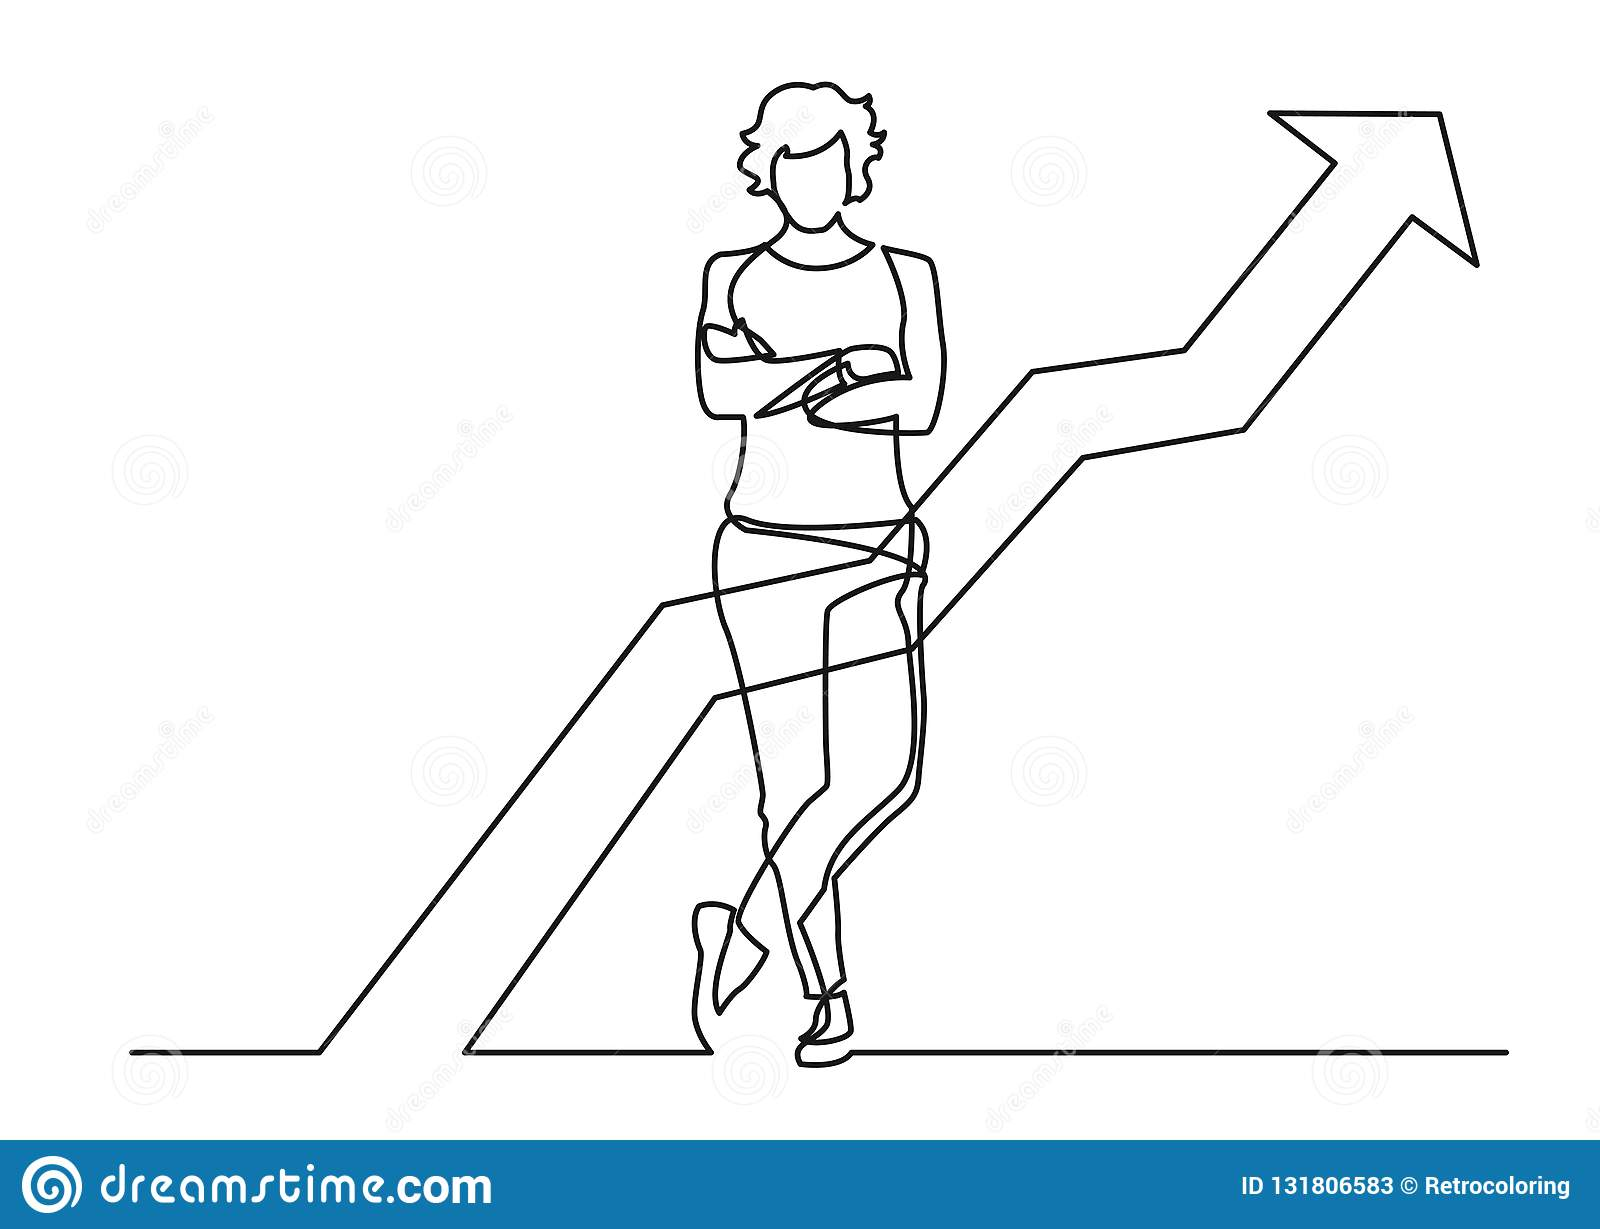 Continuous line drawing of standing confident woman with crossed arms with increasing graph